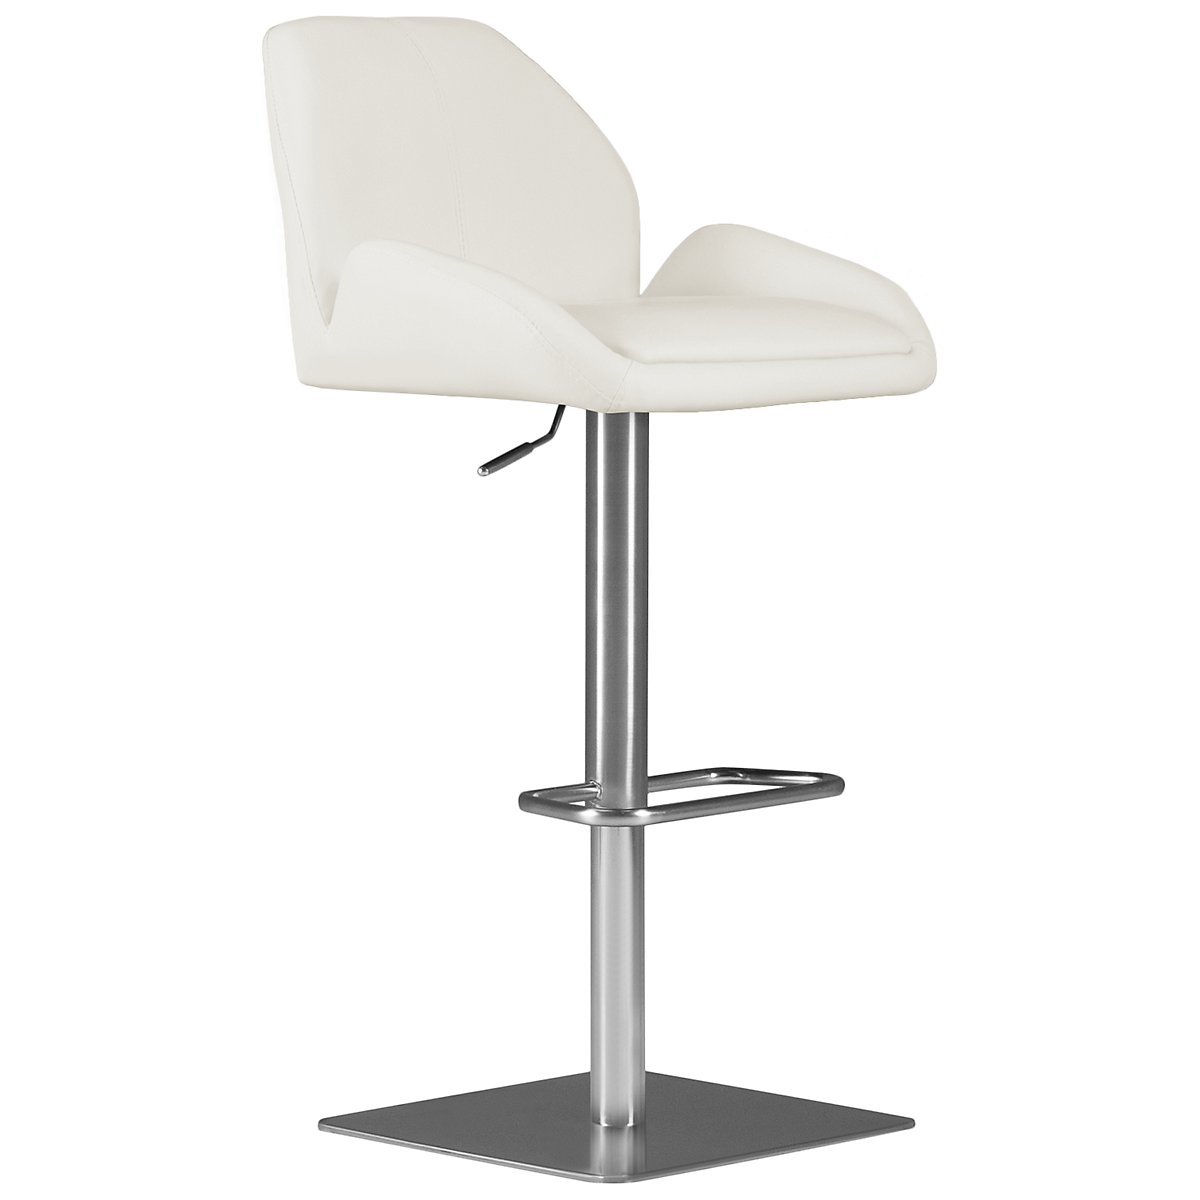 Fairfax White Upholstered Uph Adjustable Stool